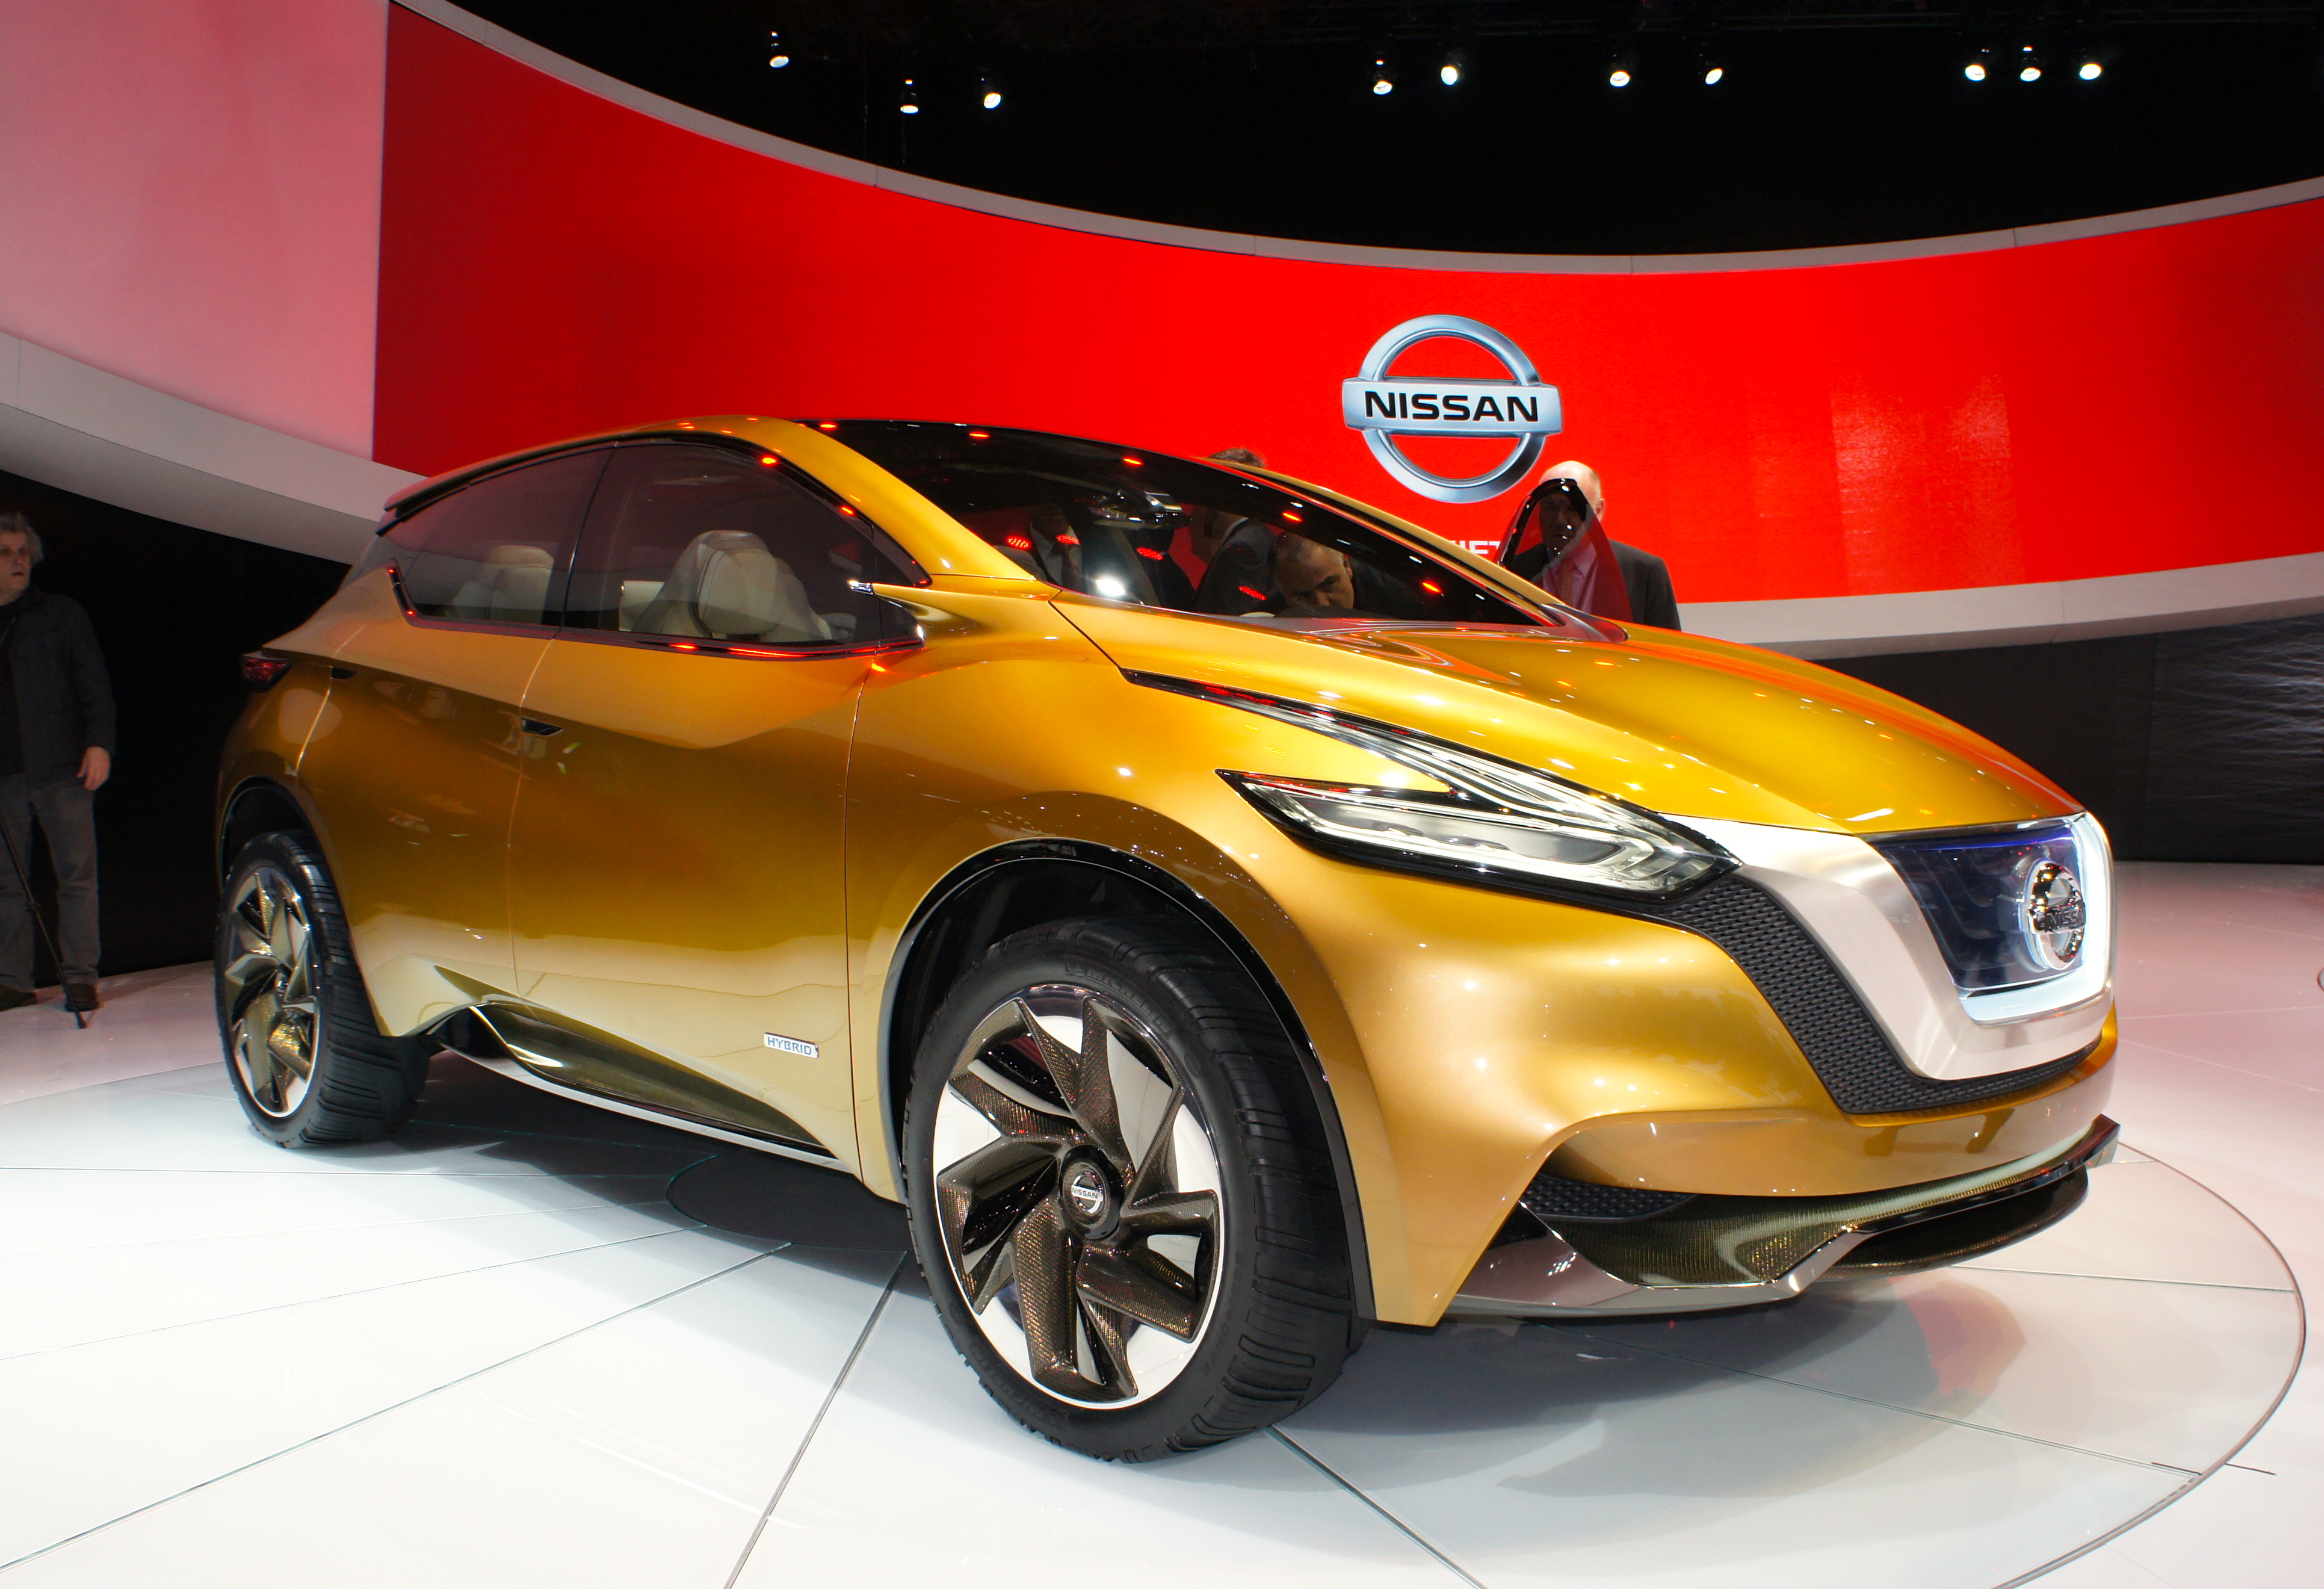 Nissan Resonance Concept at the 2013 Detroit Auto Show (photo by Sam Miller-Christiansen)